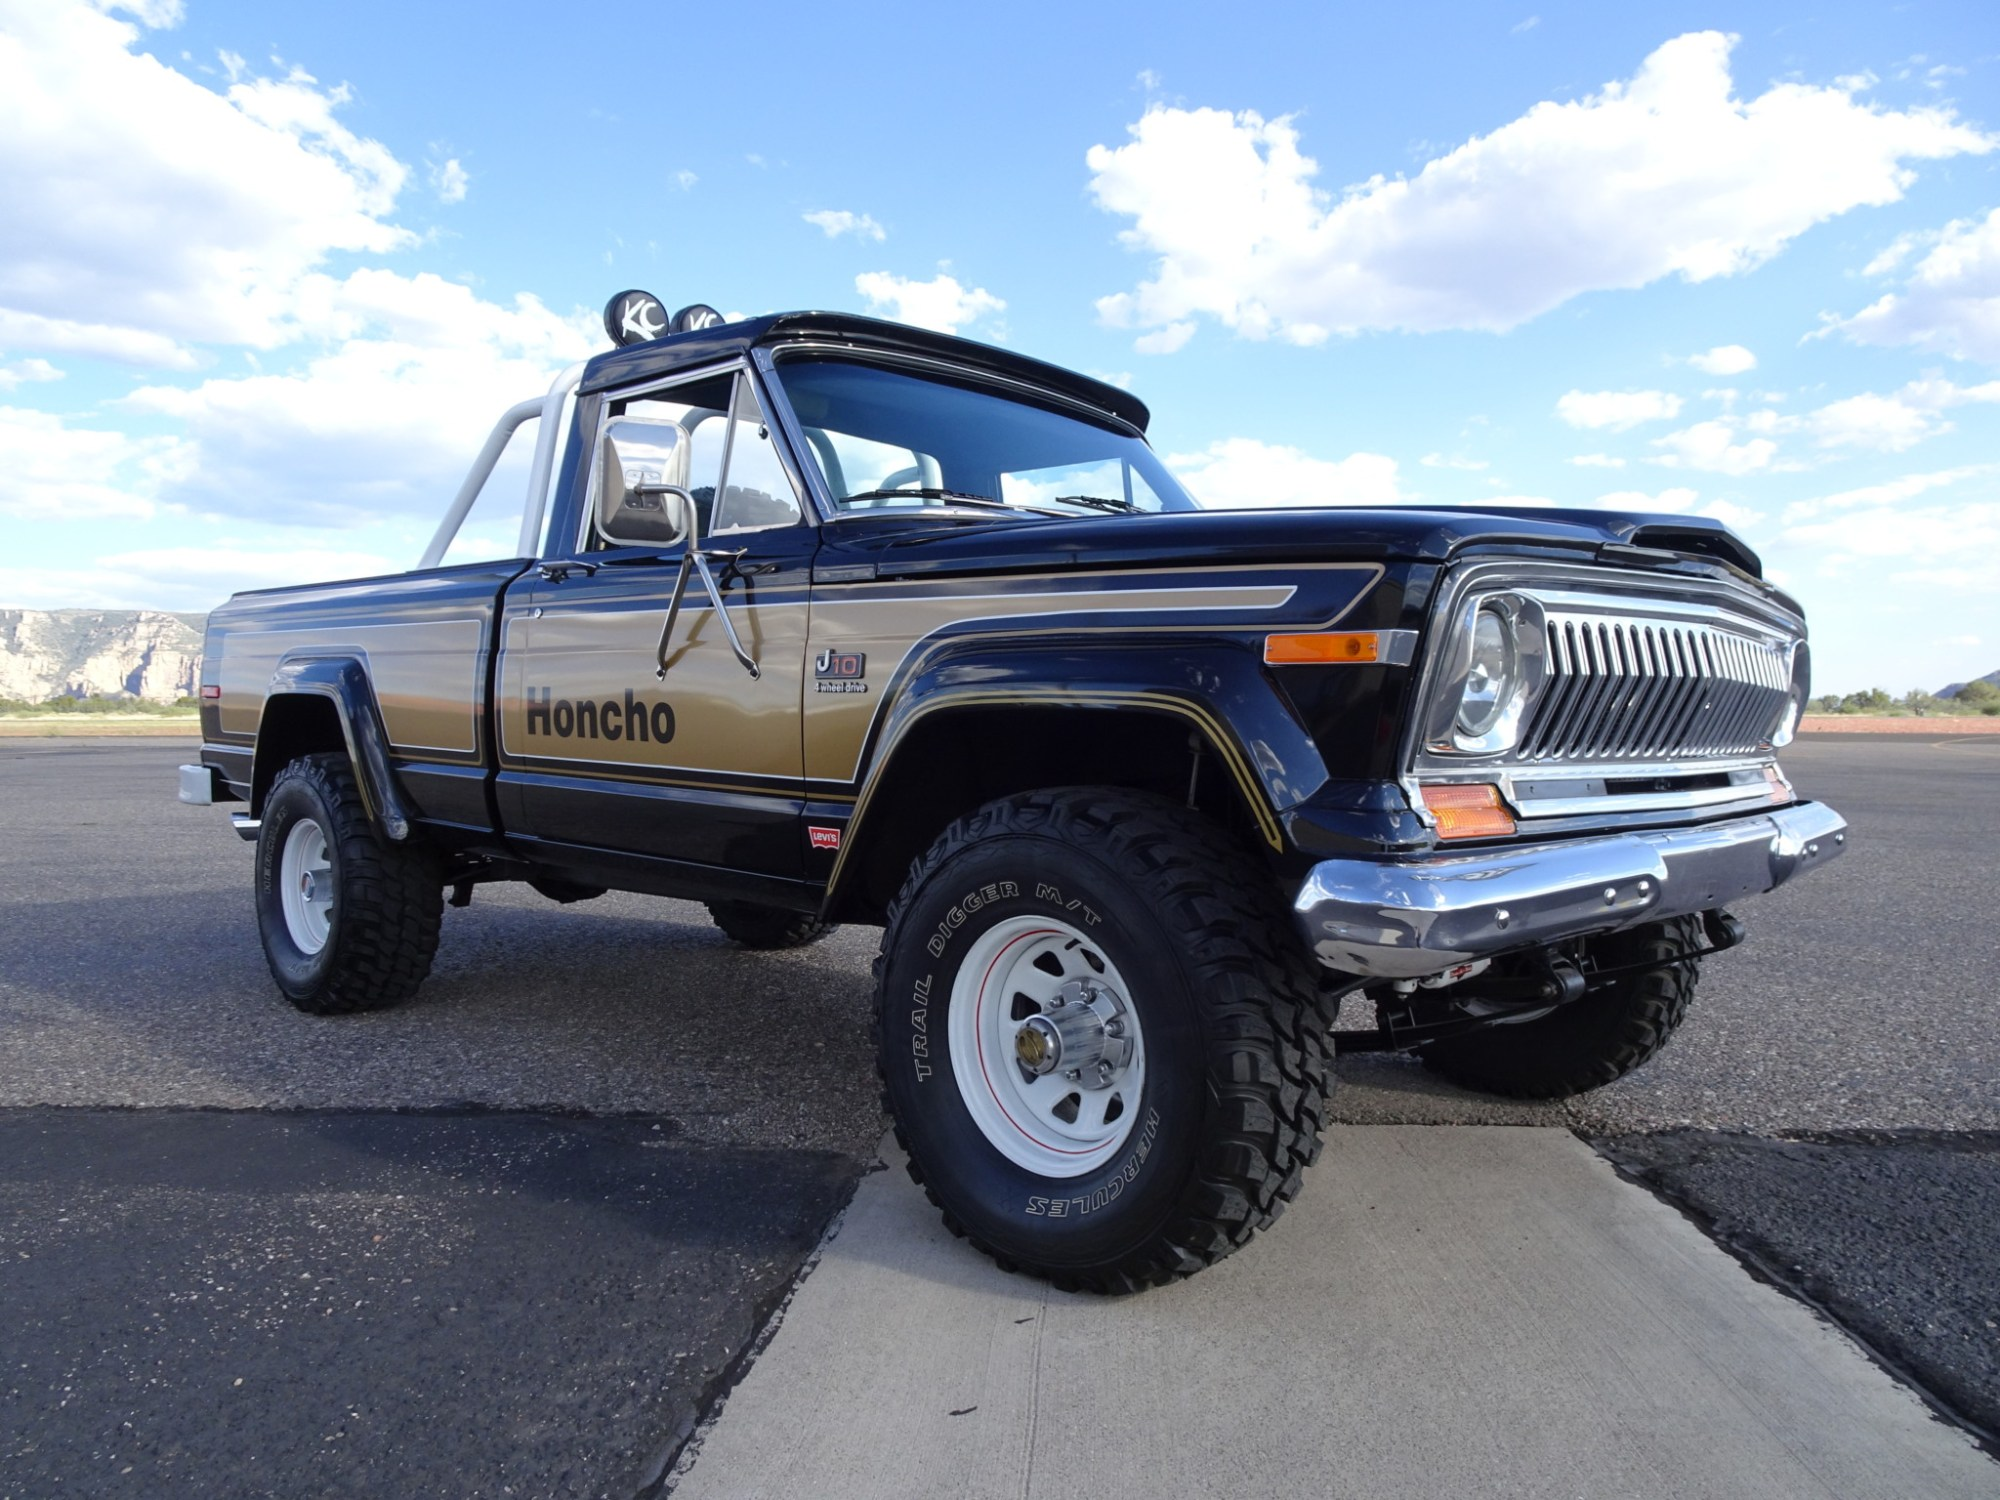 hight resolution of 1977 jeep j10 honcho pickup for sale on bat auctions closed on november 14 2018 lot 14 030 bring a trailer